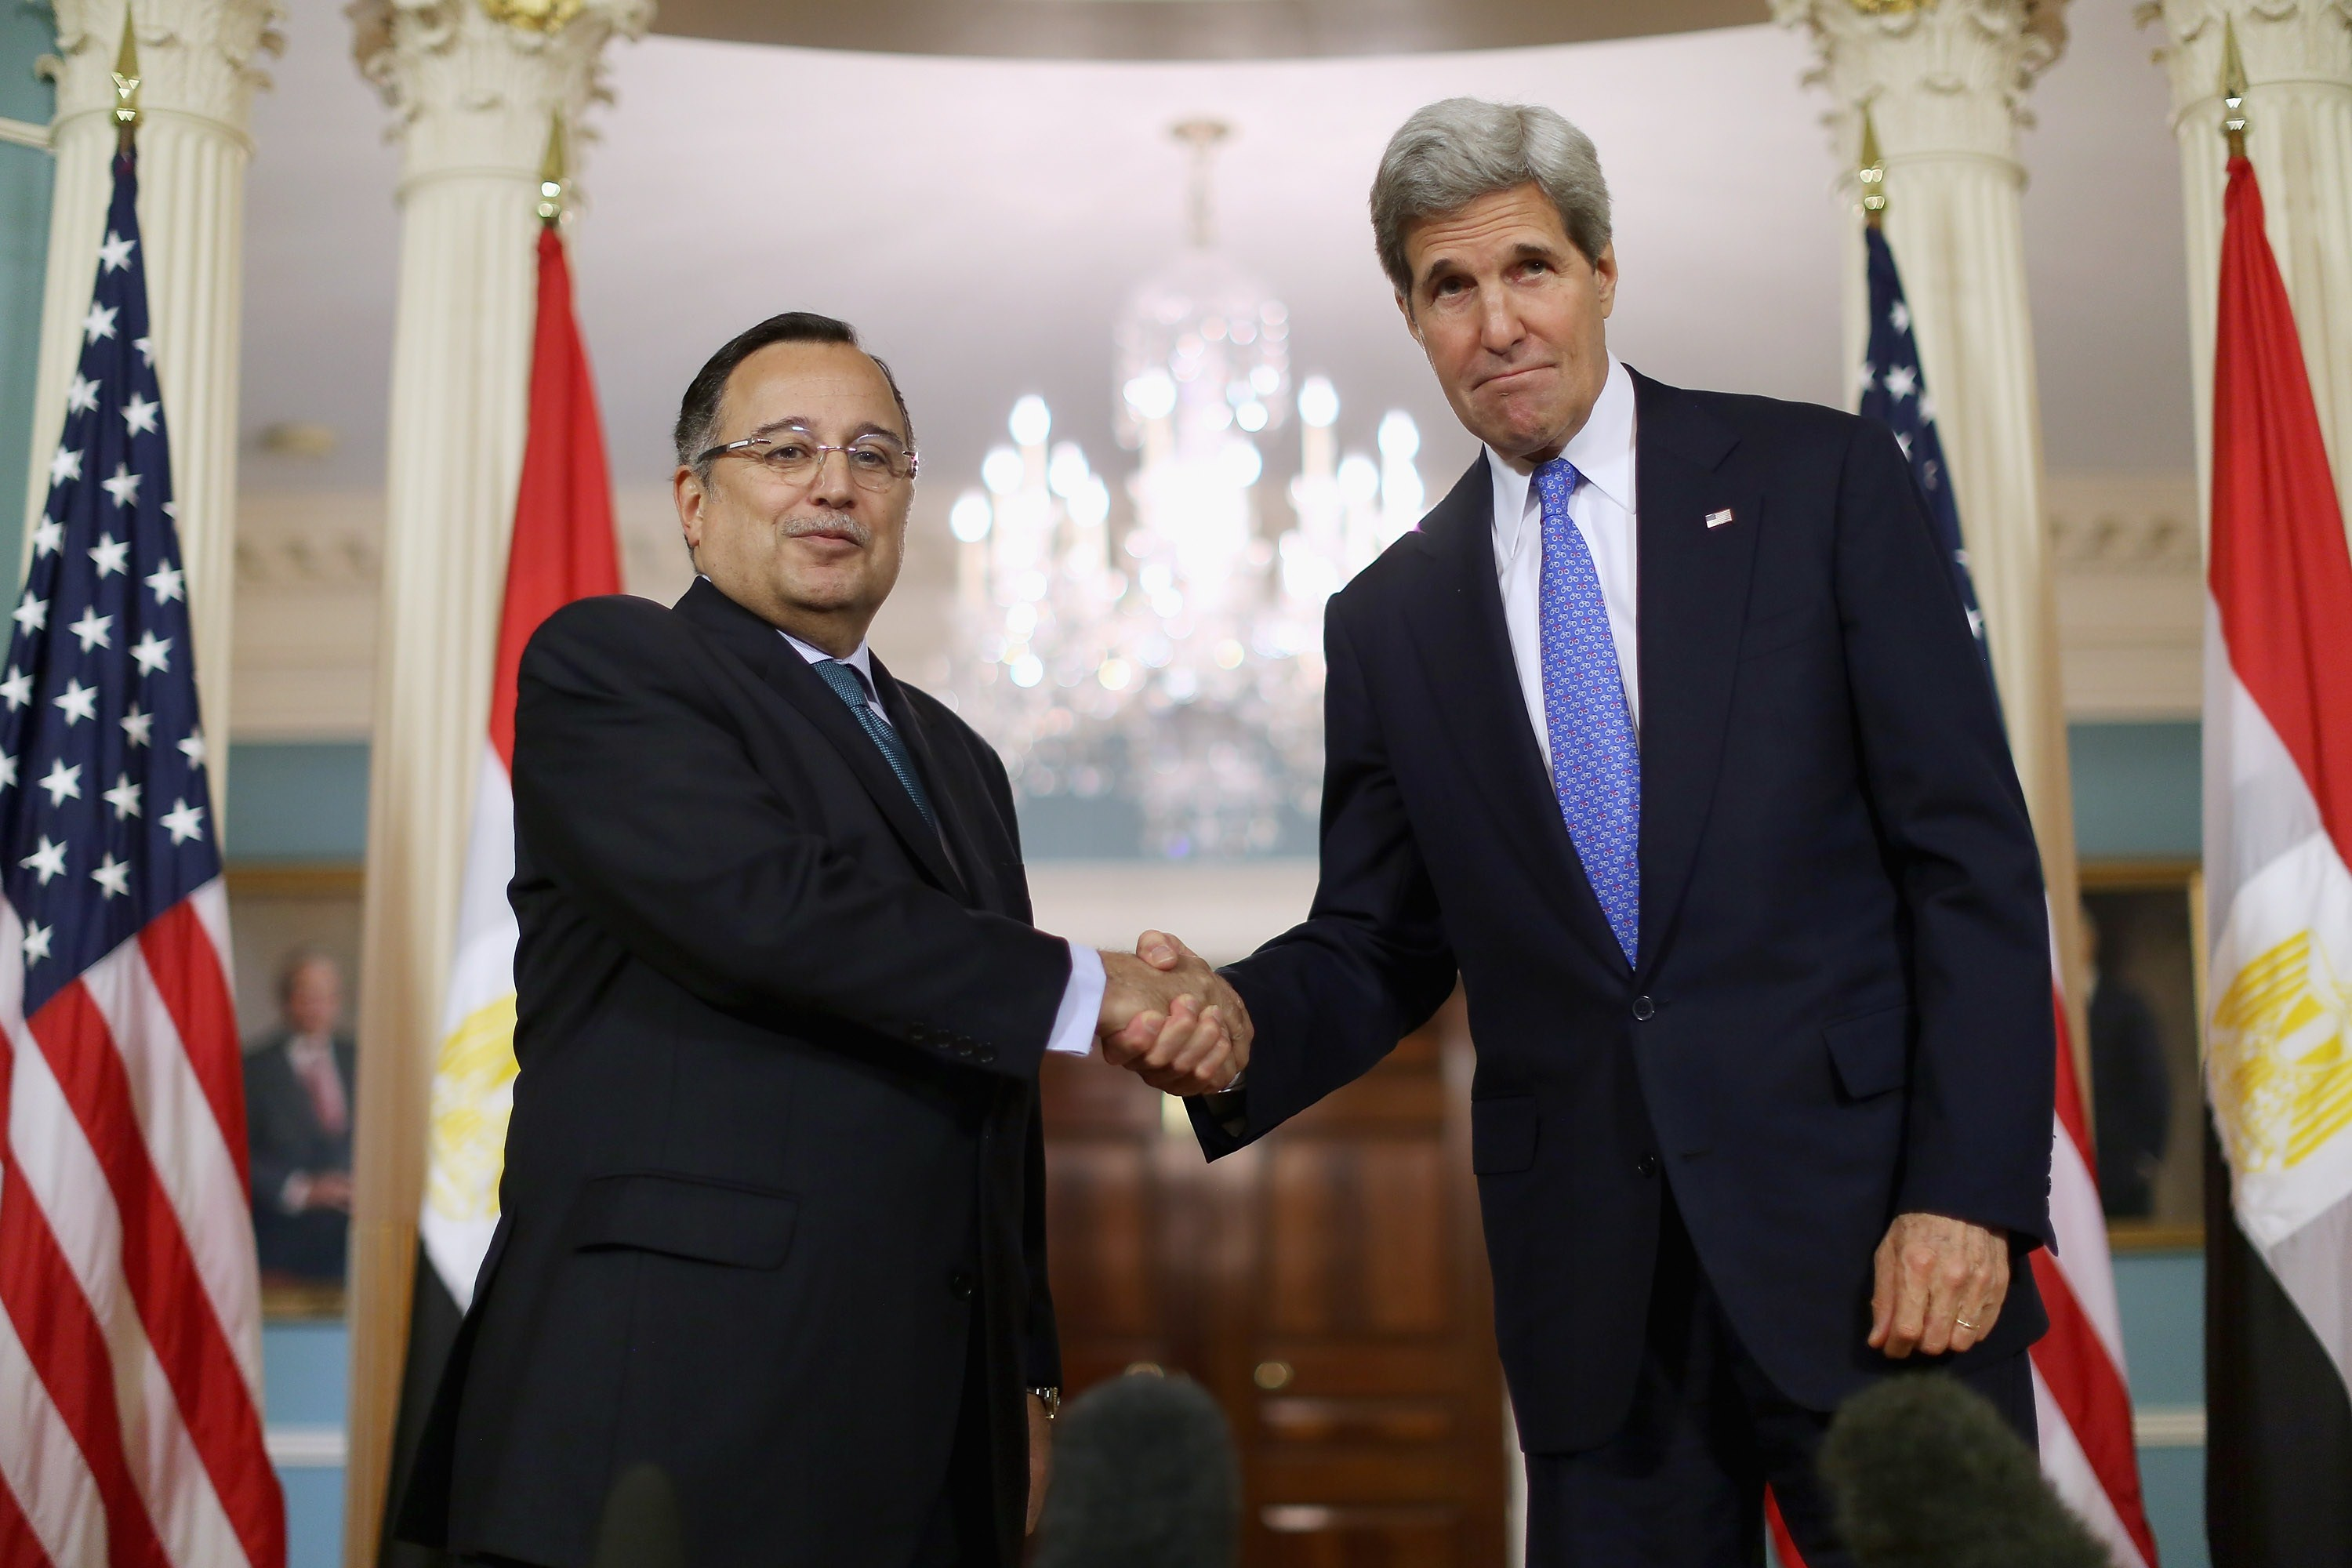 Secretary of State John Kerry (R) and Egyptian Foreign Minister Nabil Fahmy shake hands after making brief statements to the news media in the Treaty Room before meeting behind closed doors at the State Department April 29, 2014 in Washington, DC. Calling an Egyptian judge's sentencing of more than 680 people to death challenging, Kerry said the United States supports Egypt's attempts at democracy and its move to hold presidential elections in May. The mass trial and death sentences stemmed from last year's post-military coup violence and was denounced in the West and by human rights groups.    (Chip Somodevilla/Getty Images/AFP)